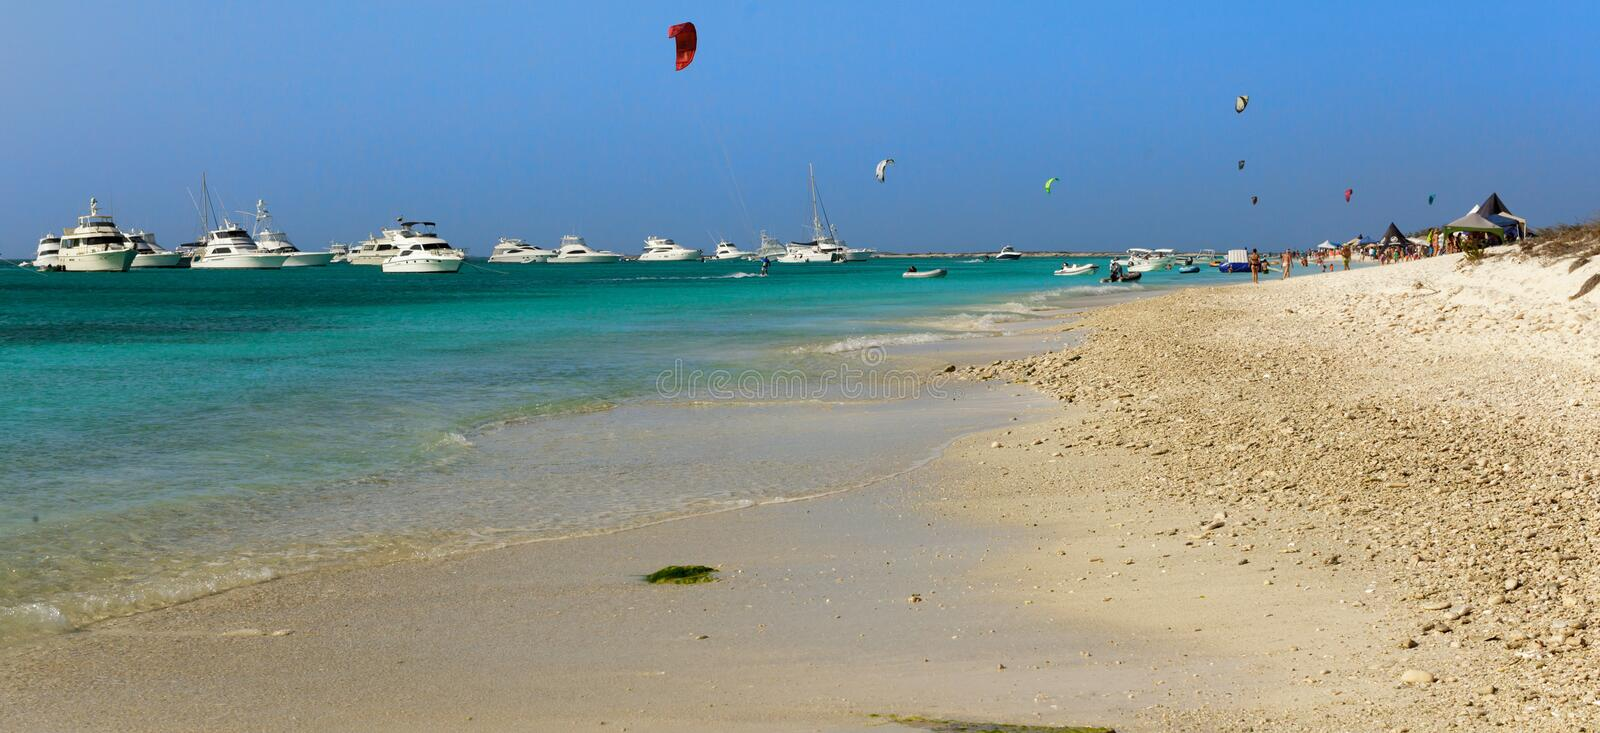 Kite surfing in the caribbean, beach scene with huts and motor yachts. stock photography